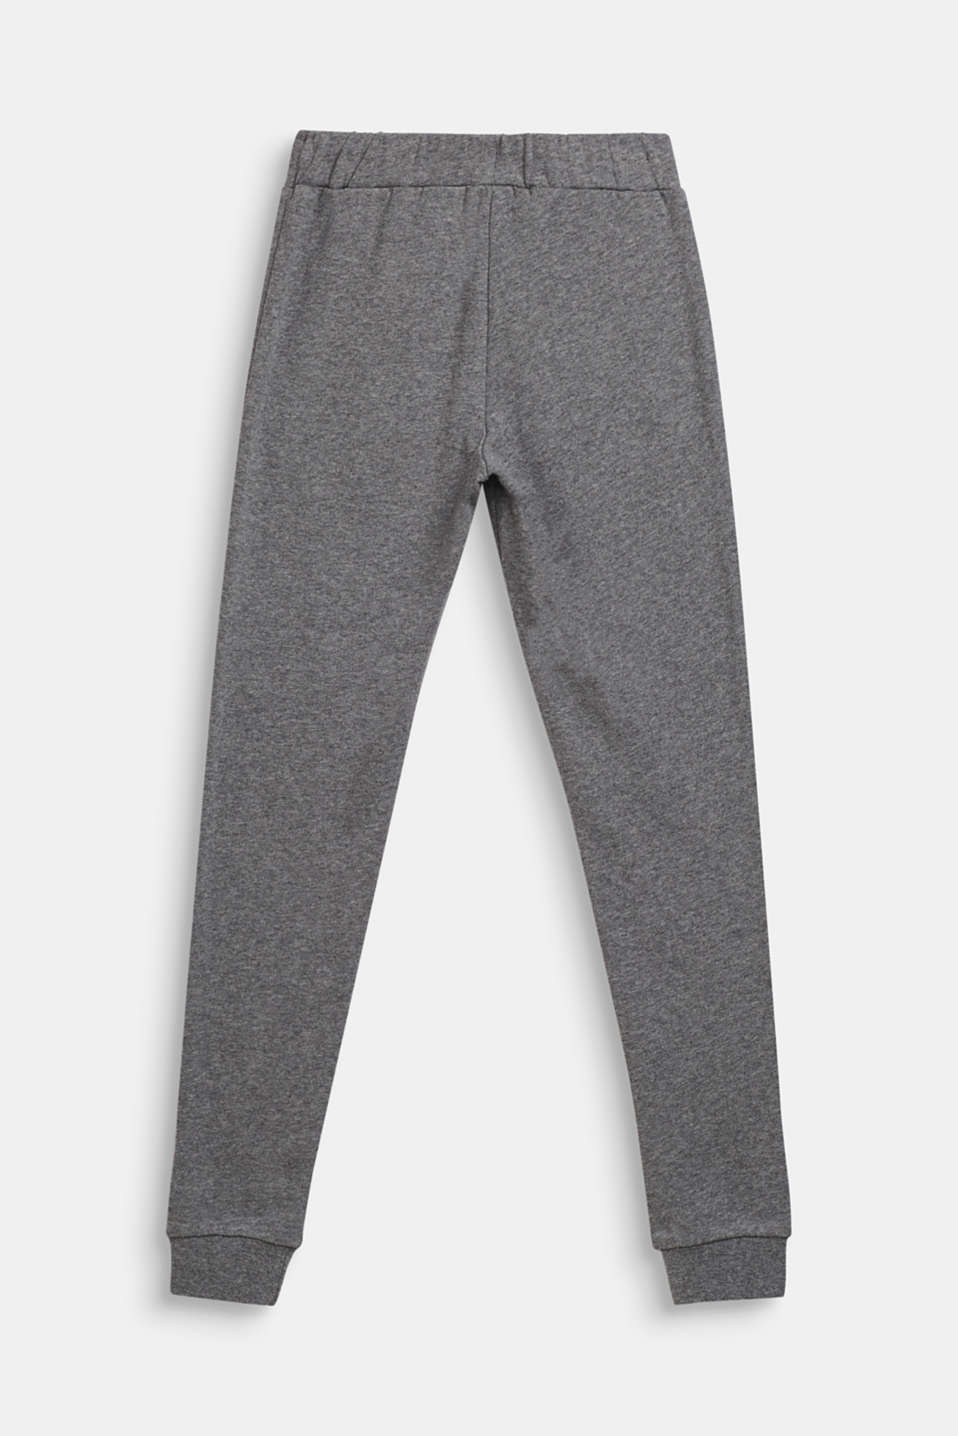 Melange sweatshirt fabric trousers made of 100% cotton, LCDARK HEATHER G, detail image number 1